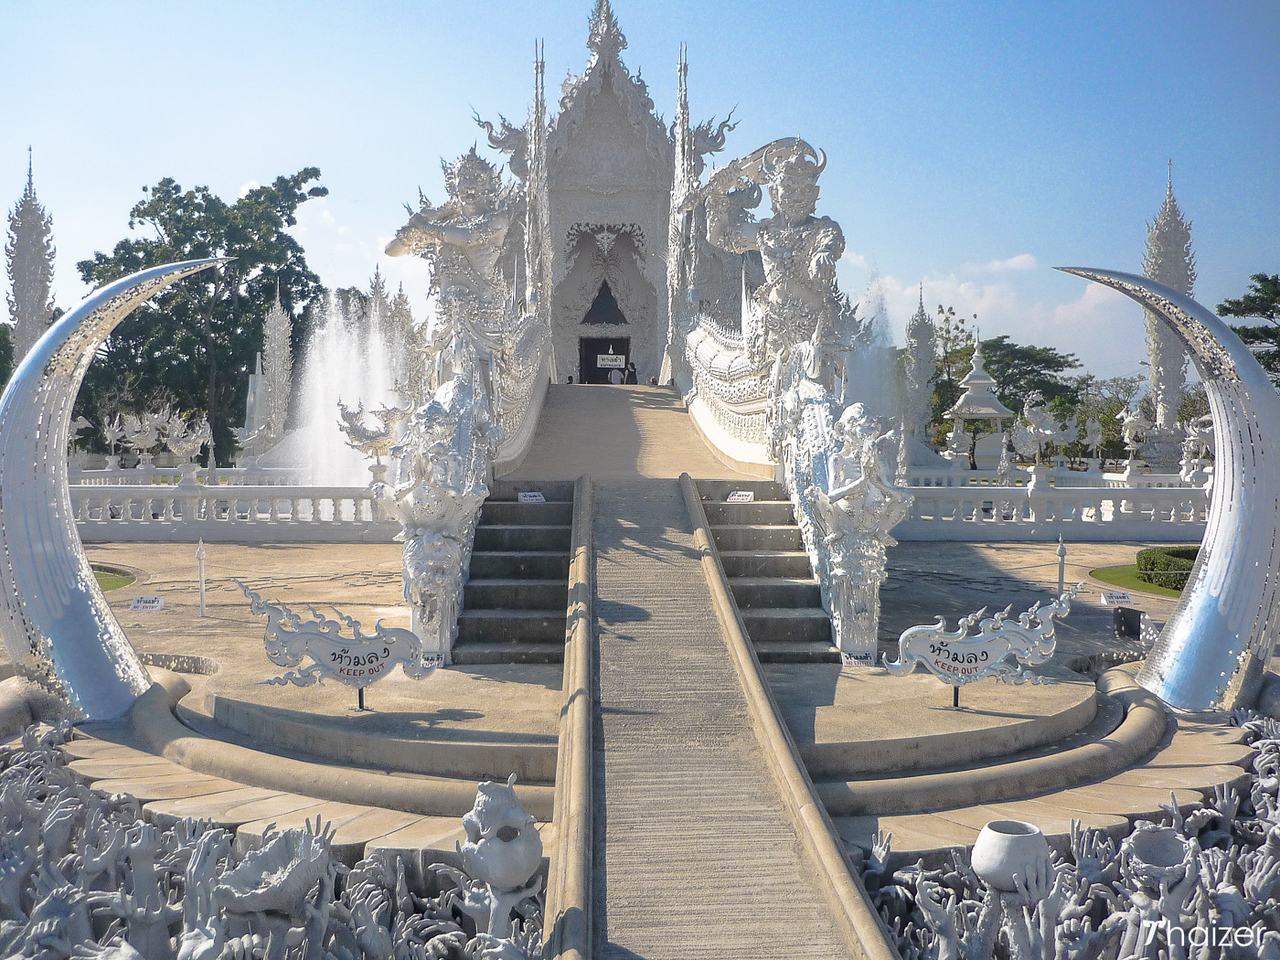 Bridge leading to the entrance of the White Temple, Chiang Rai